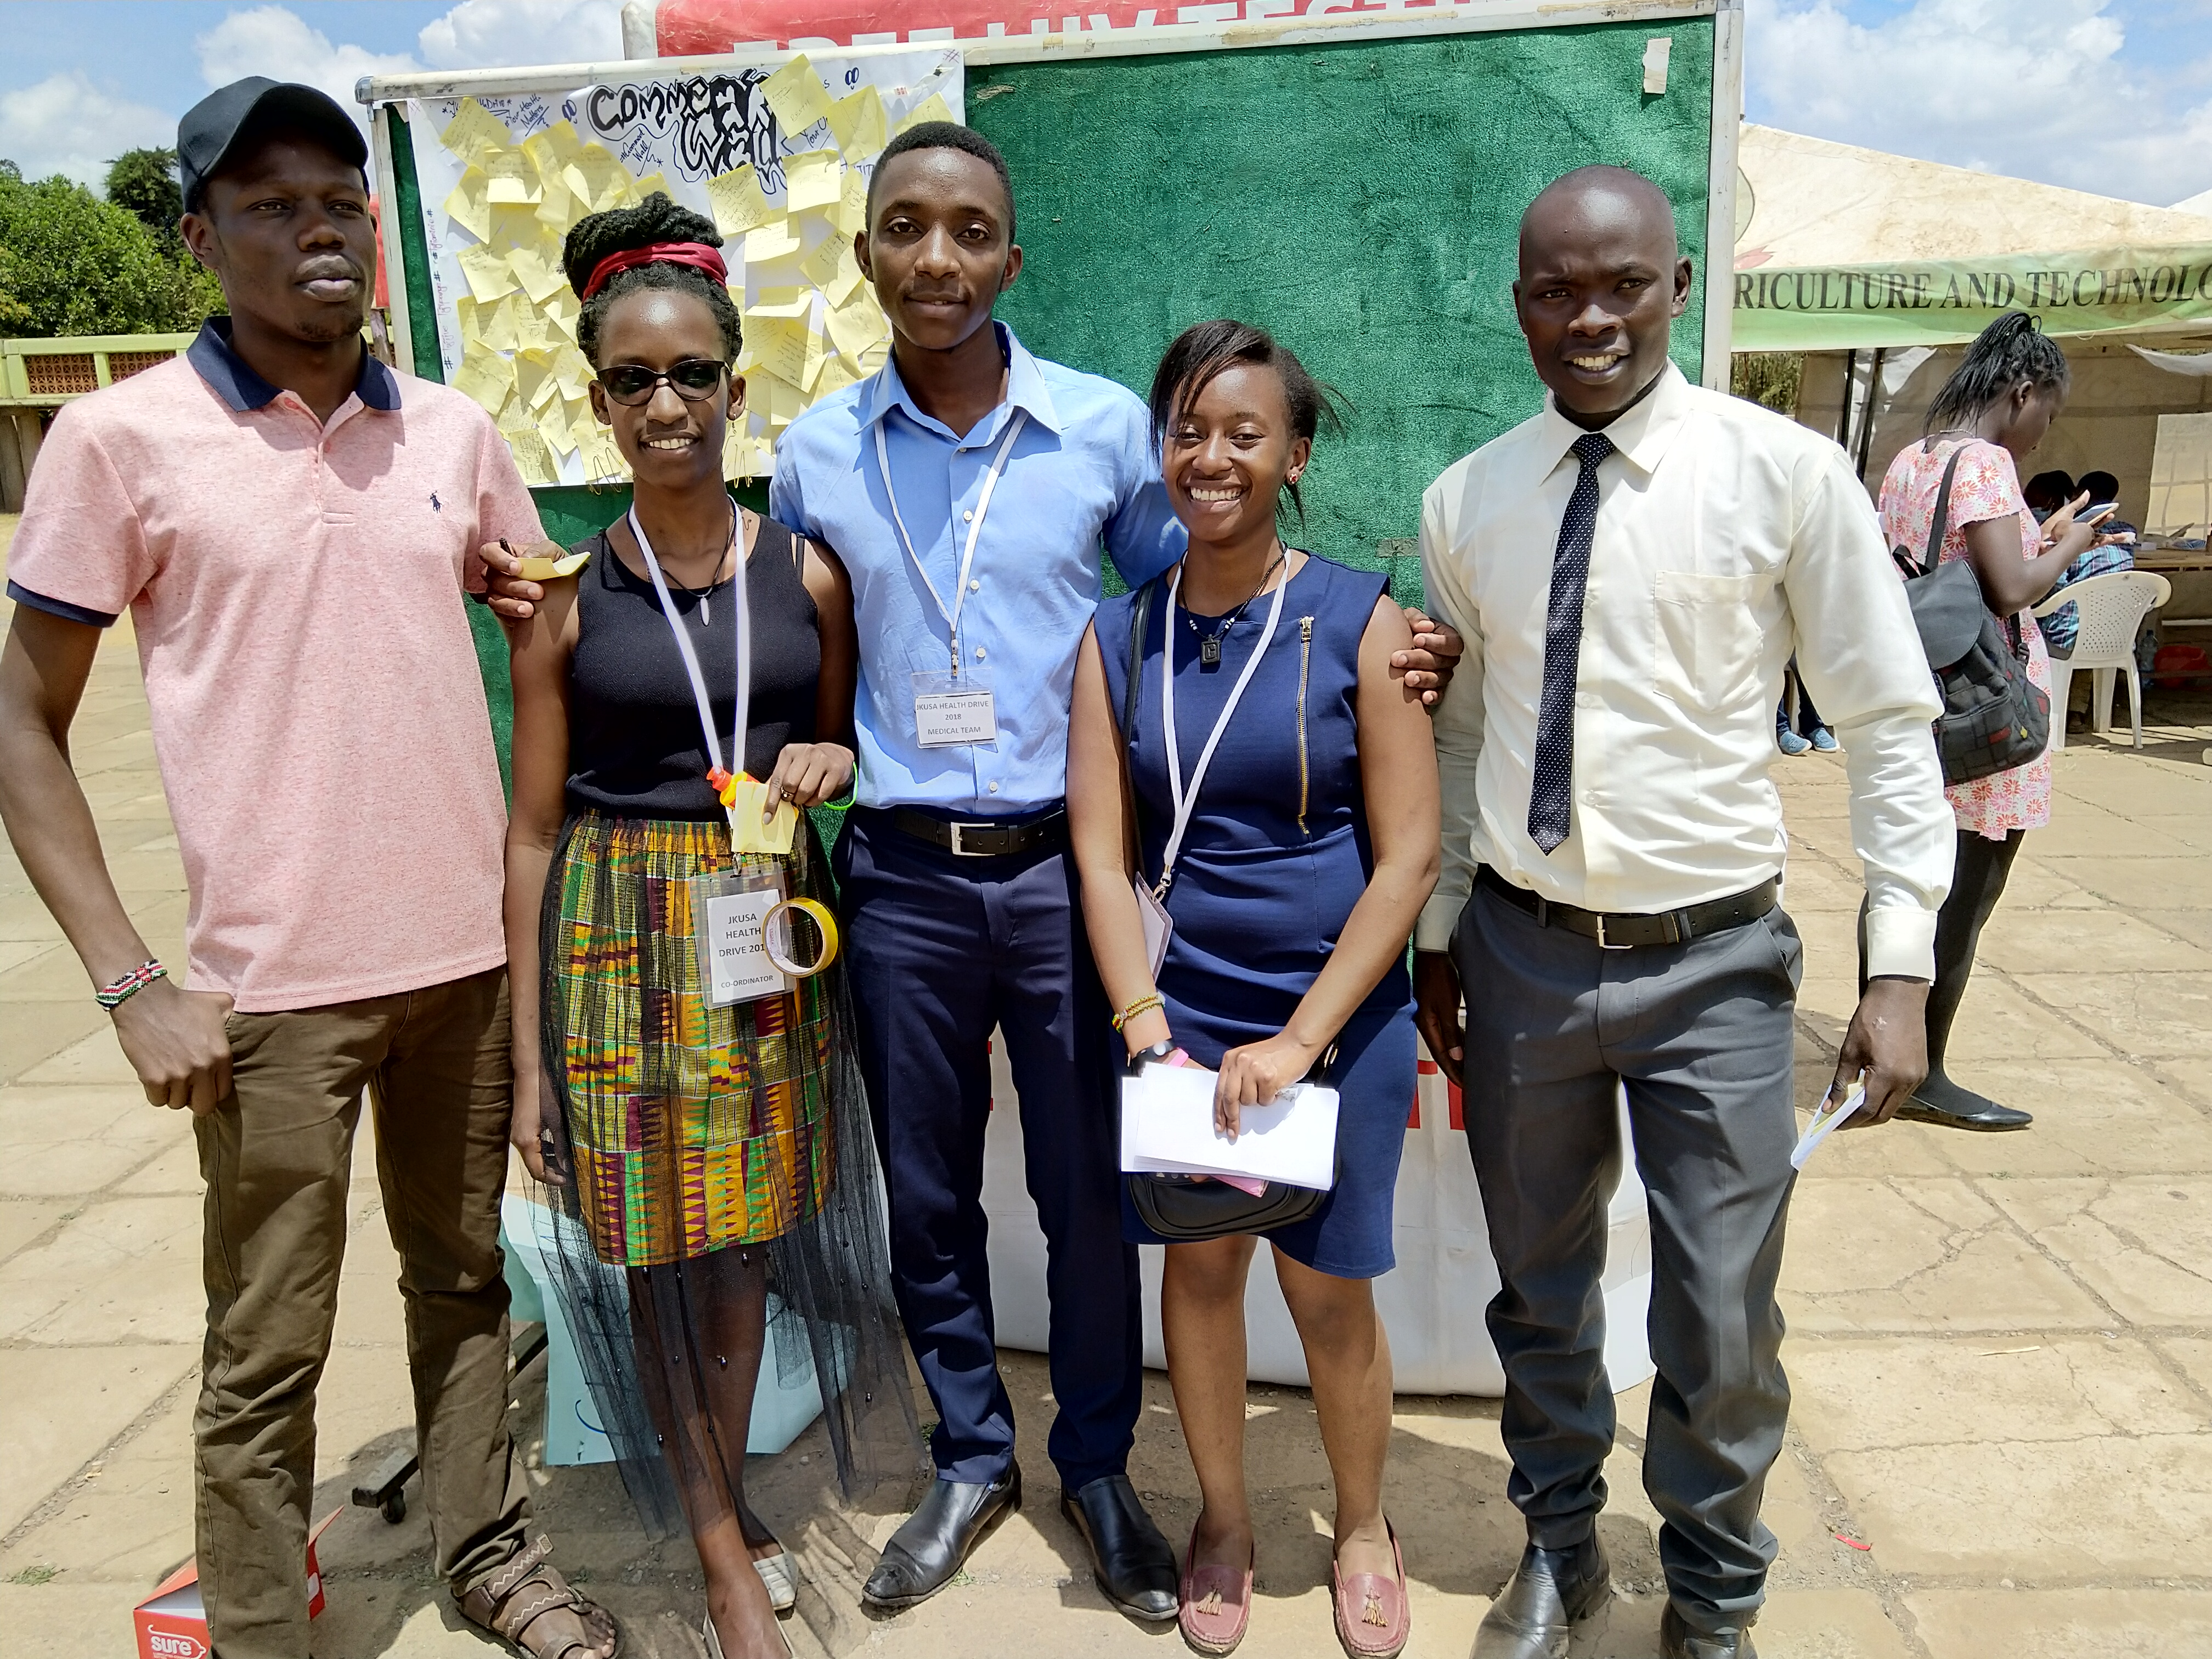 Ms. Claire poses with part of her team at the pavilion on the last day of the drive. Behind them is the comment/feedback board.